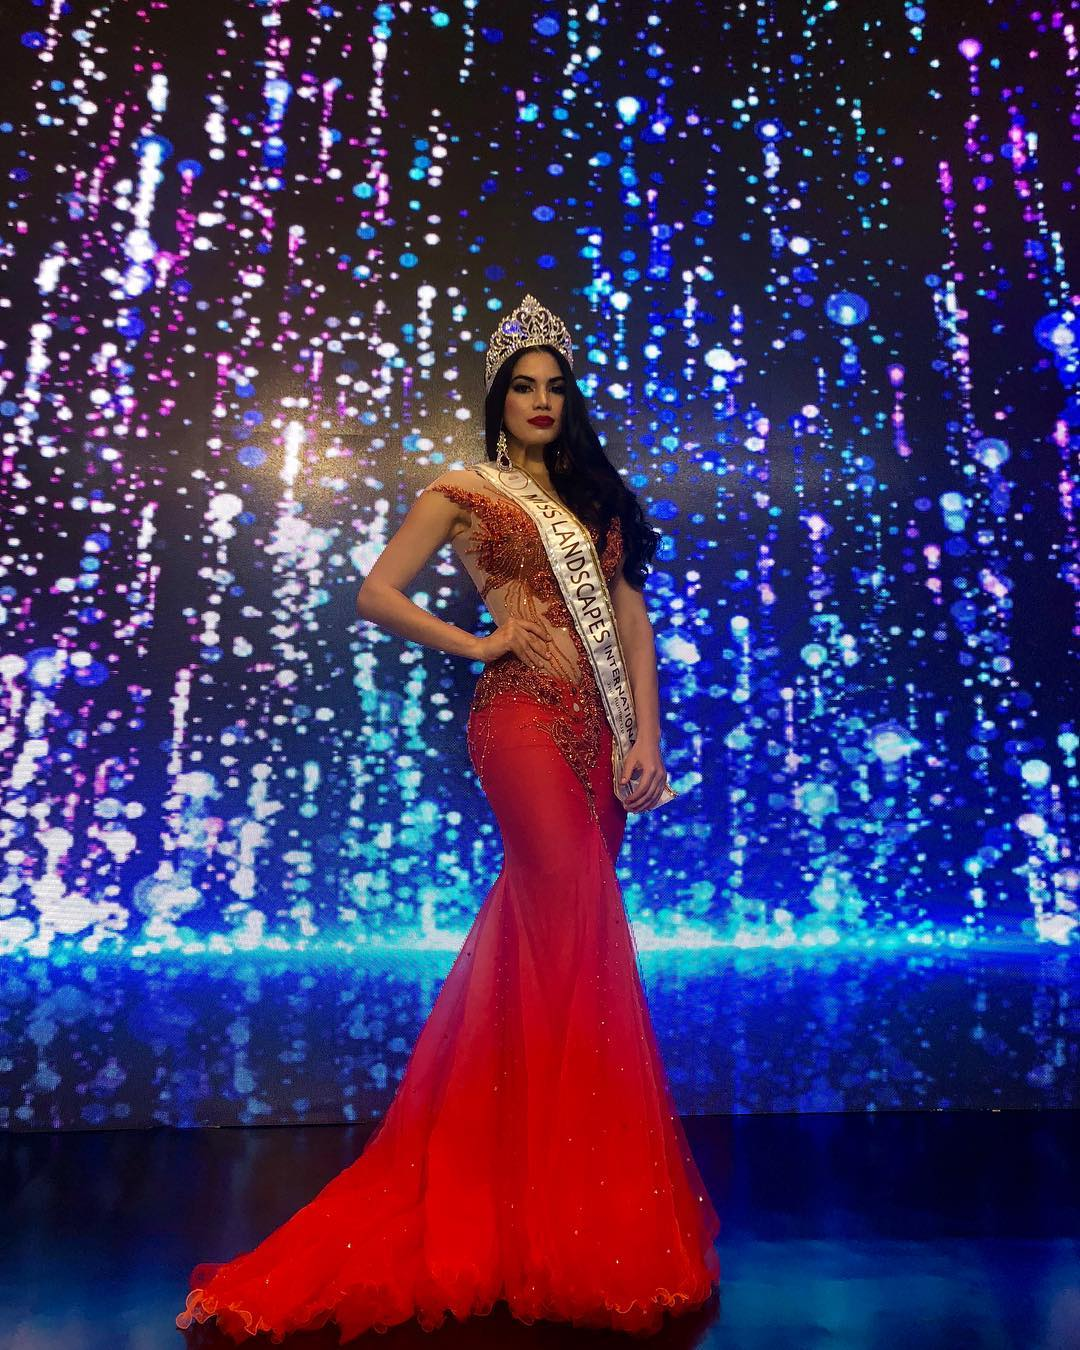 samantha batallanos, 3rd runner-up de miss landscapes international 2018. - Página 2 35928111